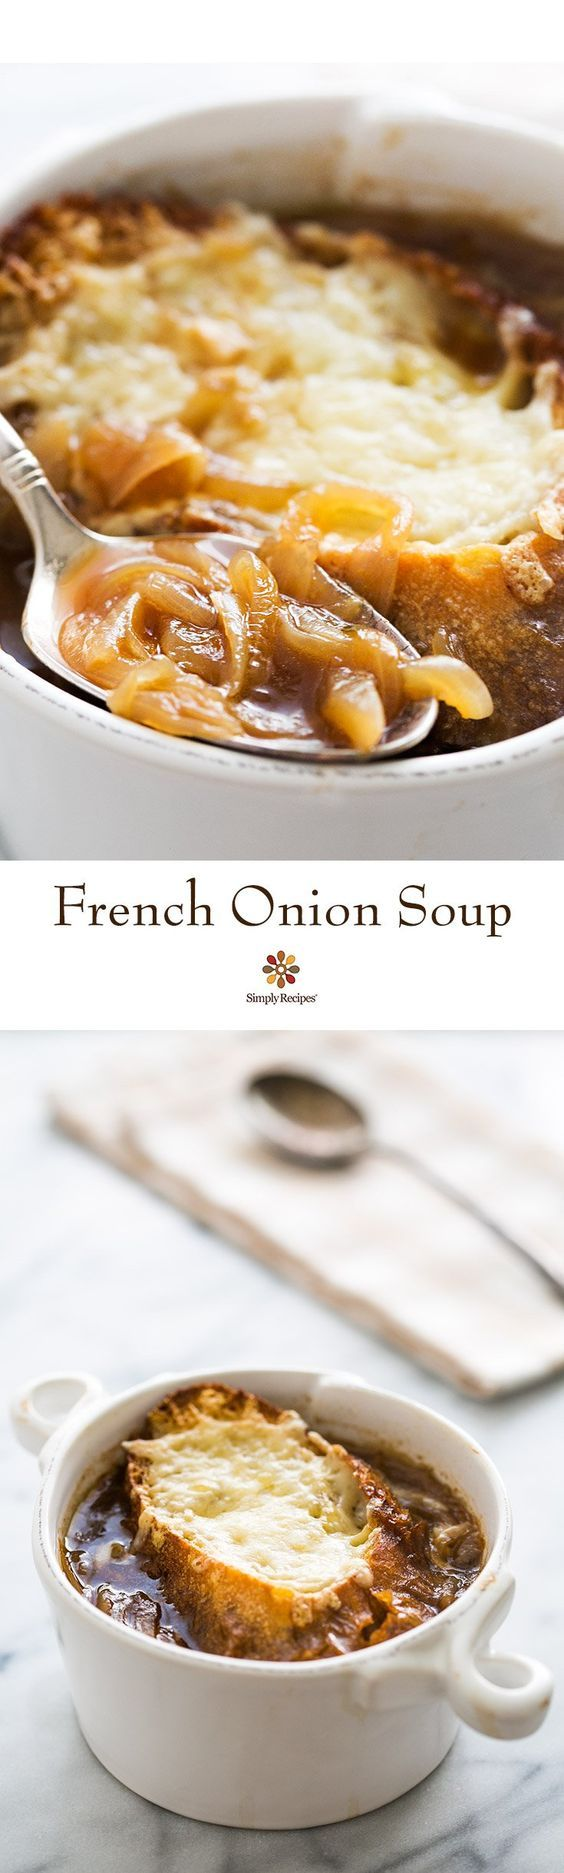 Classic simple French onion soup! With beef stock base slow-cooked caramelized onions French bread gruyere and Parmesan cheese. ~